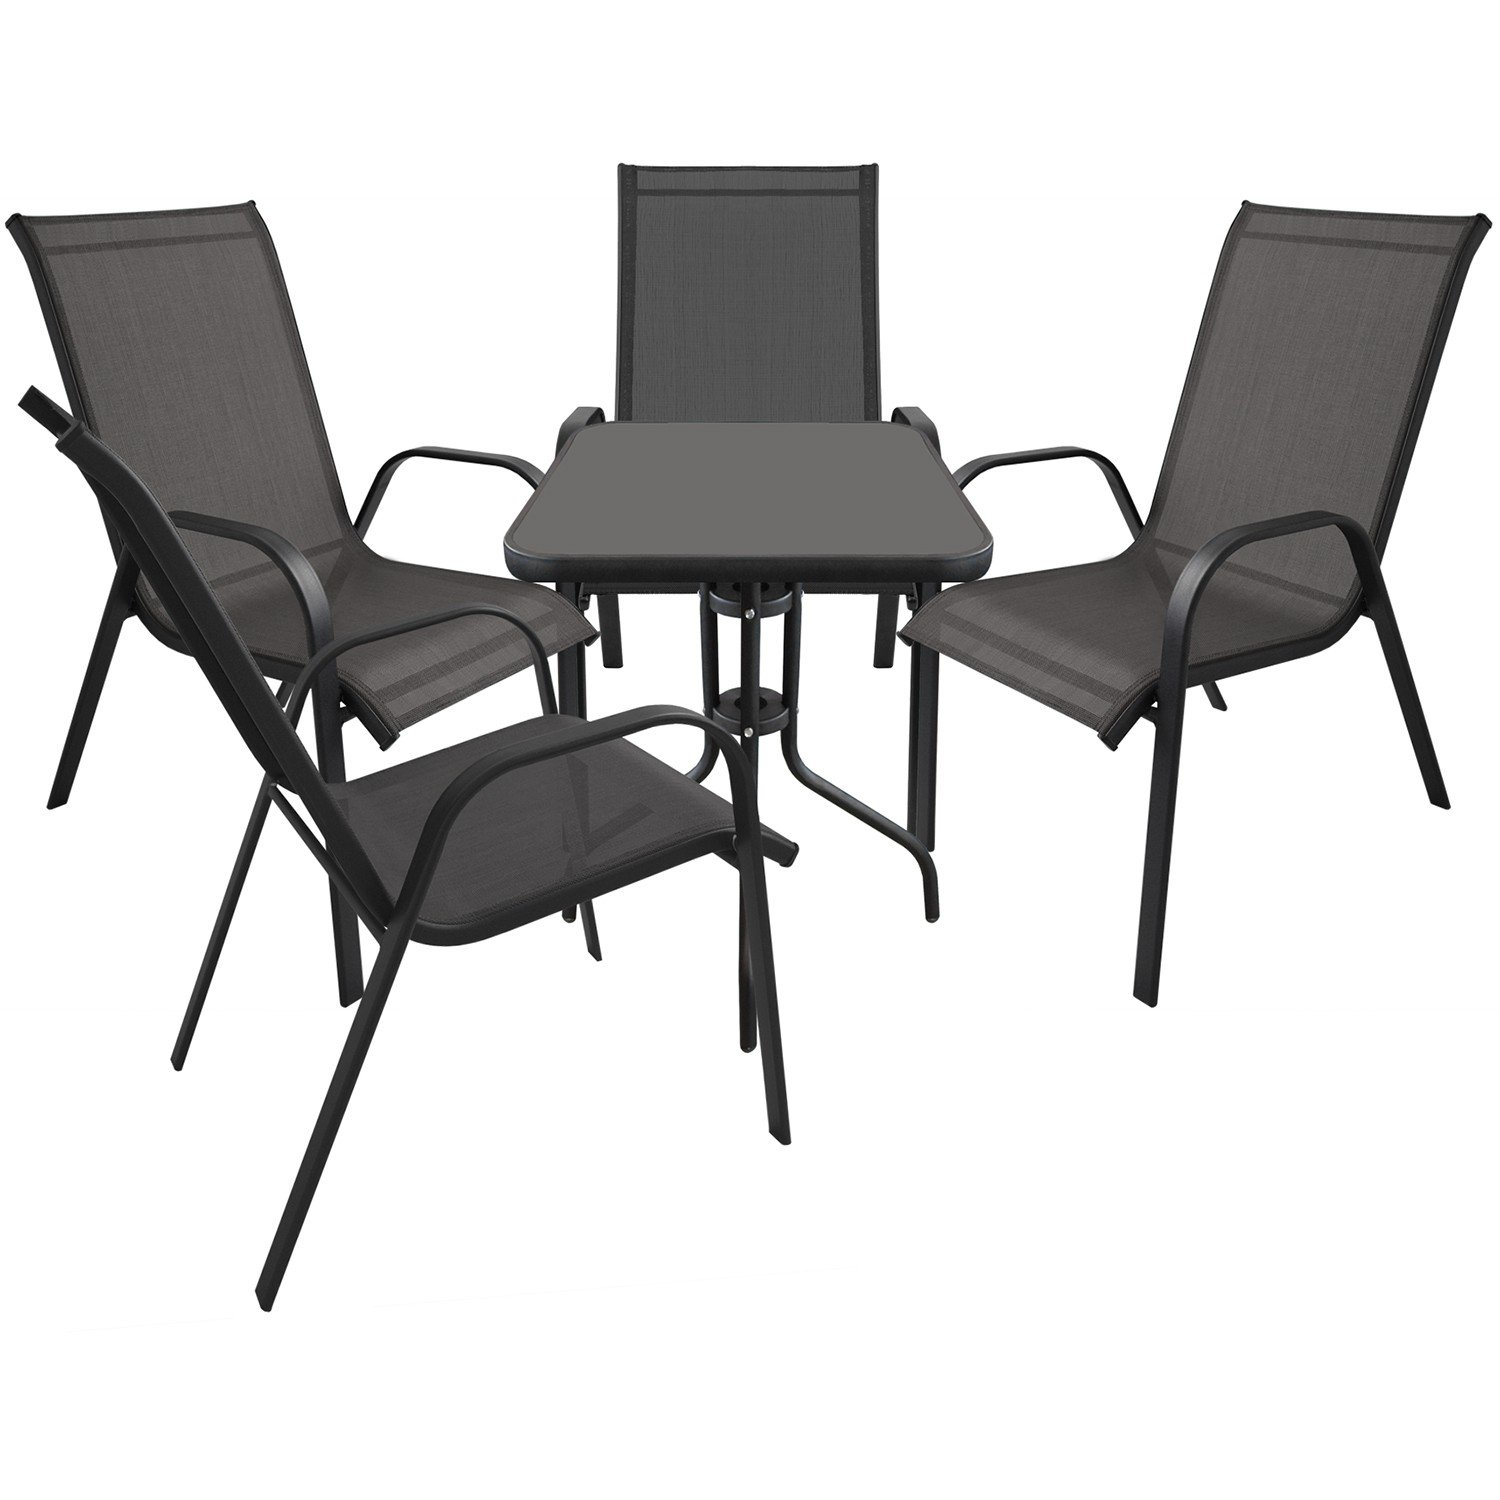 5tlg bistrogarnitur balkonm bel gartenm bel set sitzgruppe gartengarnitur bistrotisch. Black Bedroom Furniture Sets. Home Design Ideas